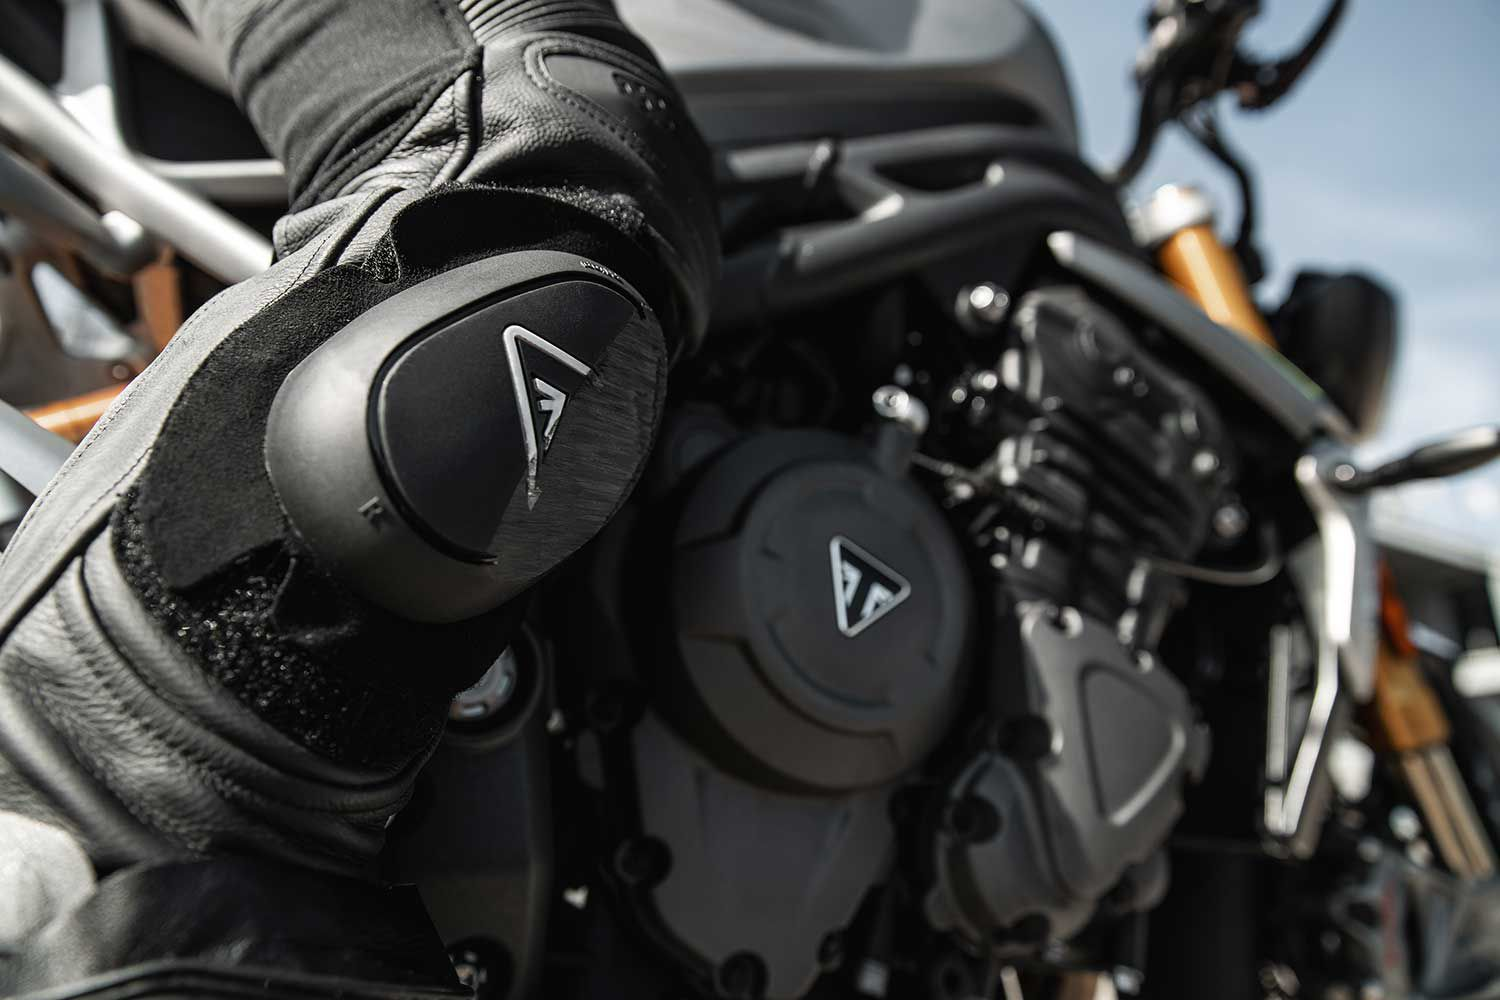 An all-new, more powerful, and lighter-weight triple was designed using lessons learned during Triumph's Moto2 engine development.